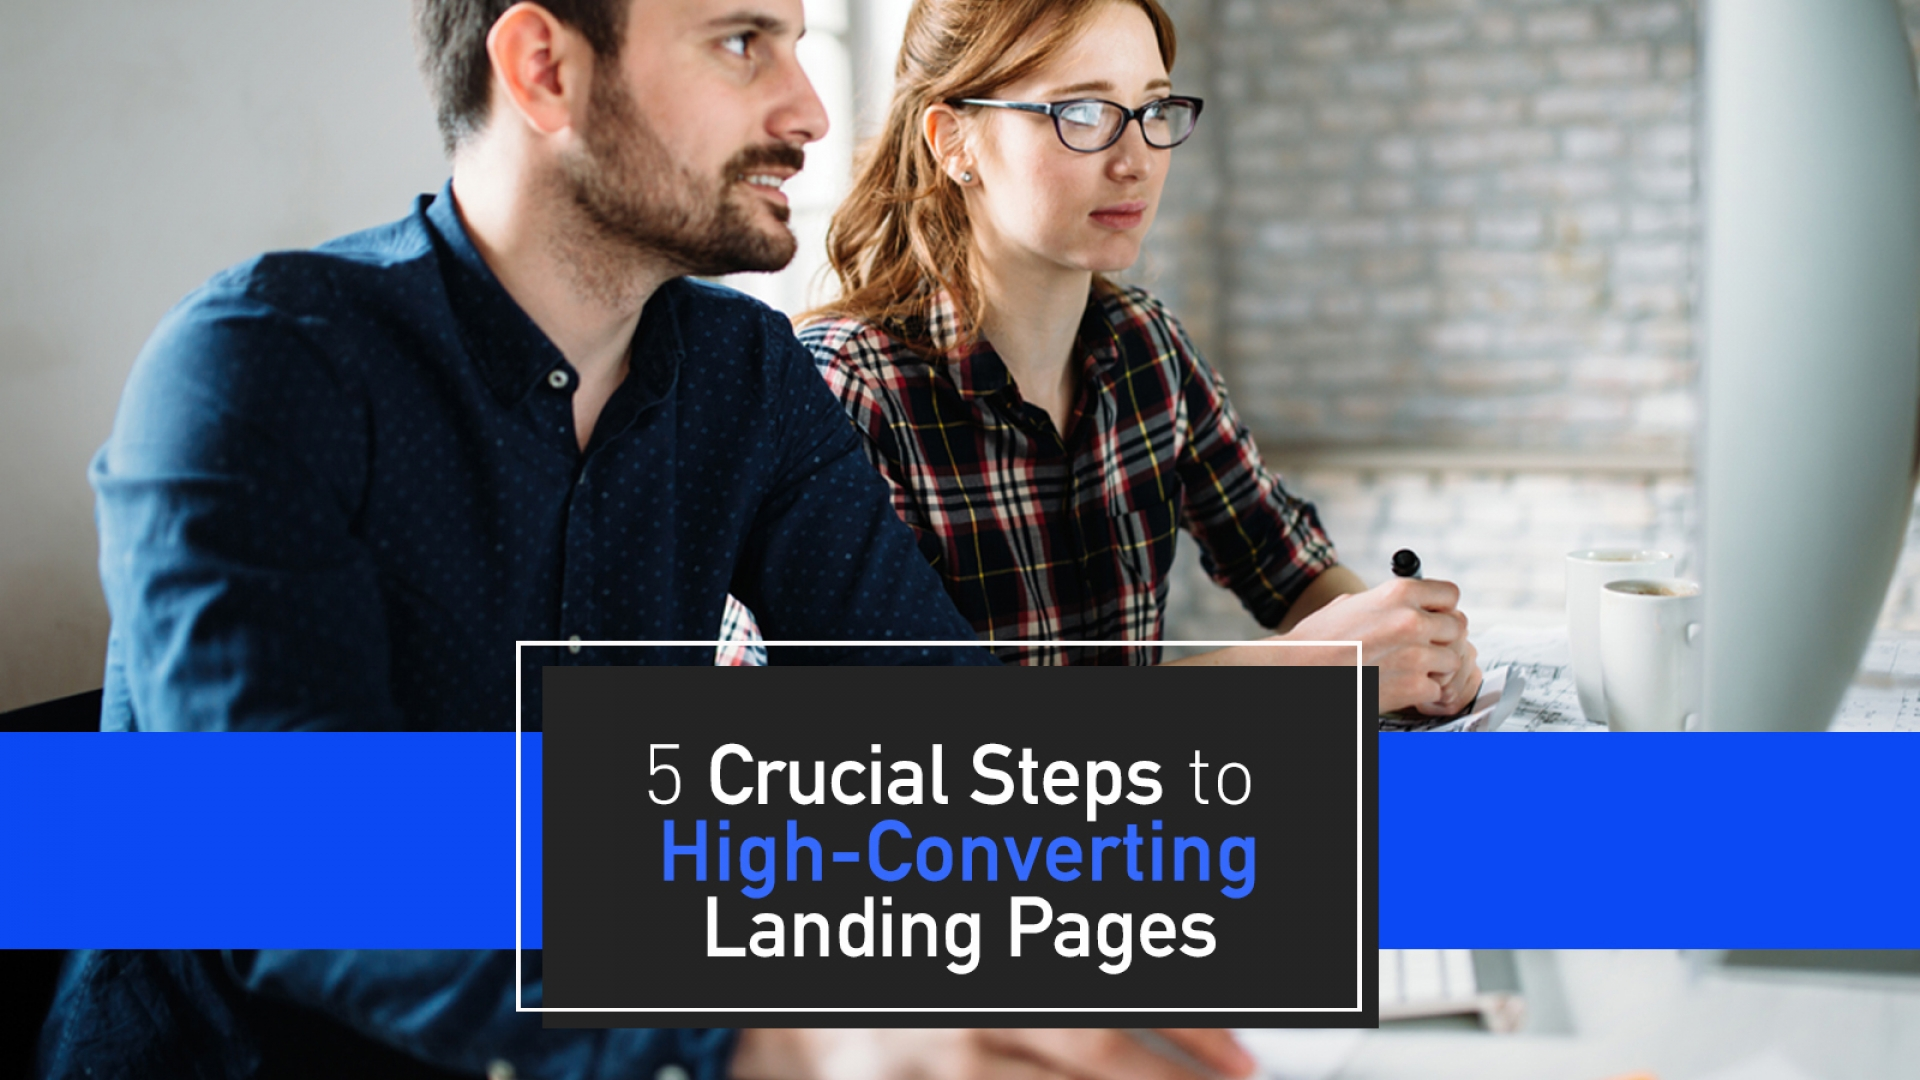 The 5-Crucial-Steps To The Perfect High-Converting Landing Page